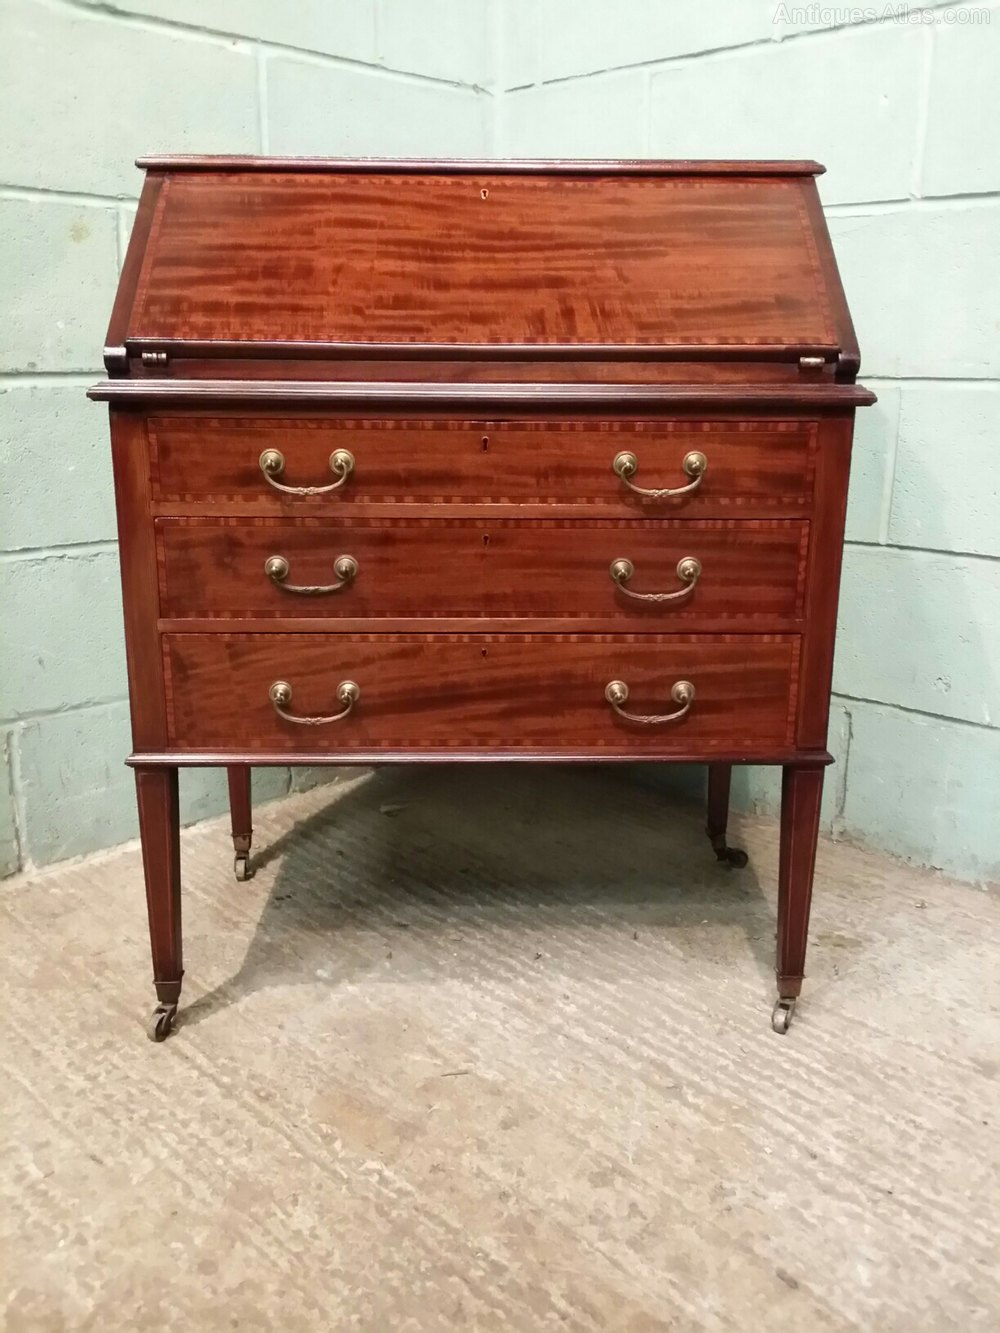 Antique edwardian inlaid mahogany bureau c1900 antiques for Bureau antique